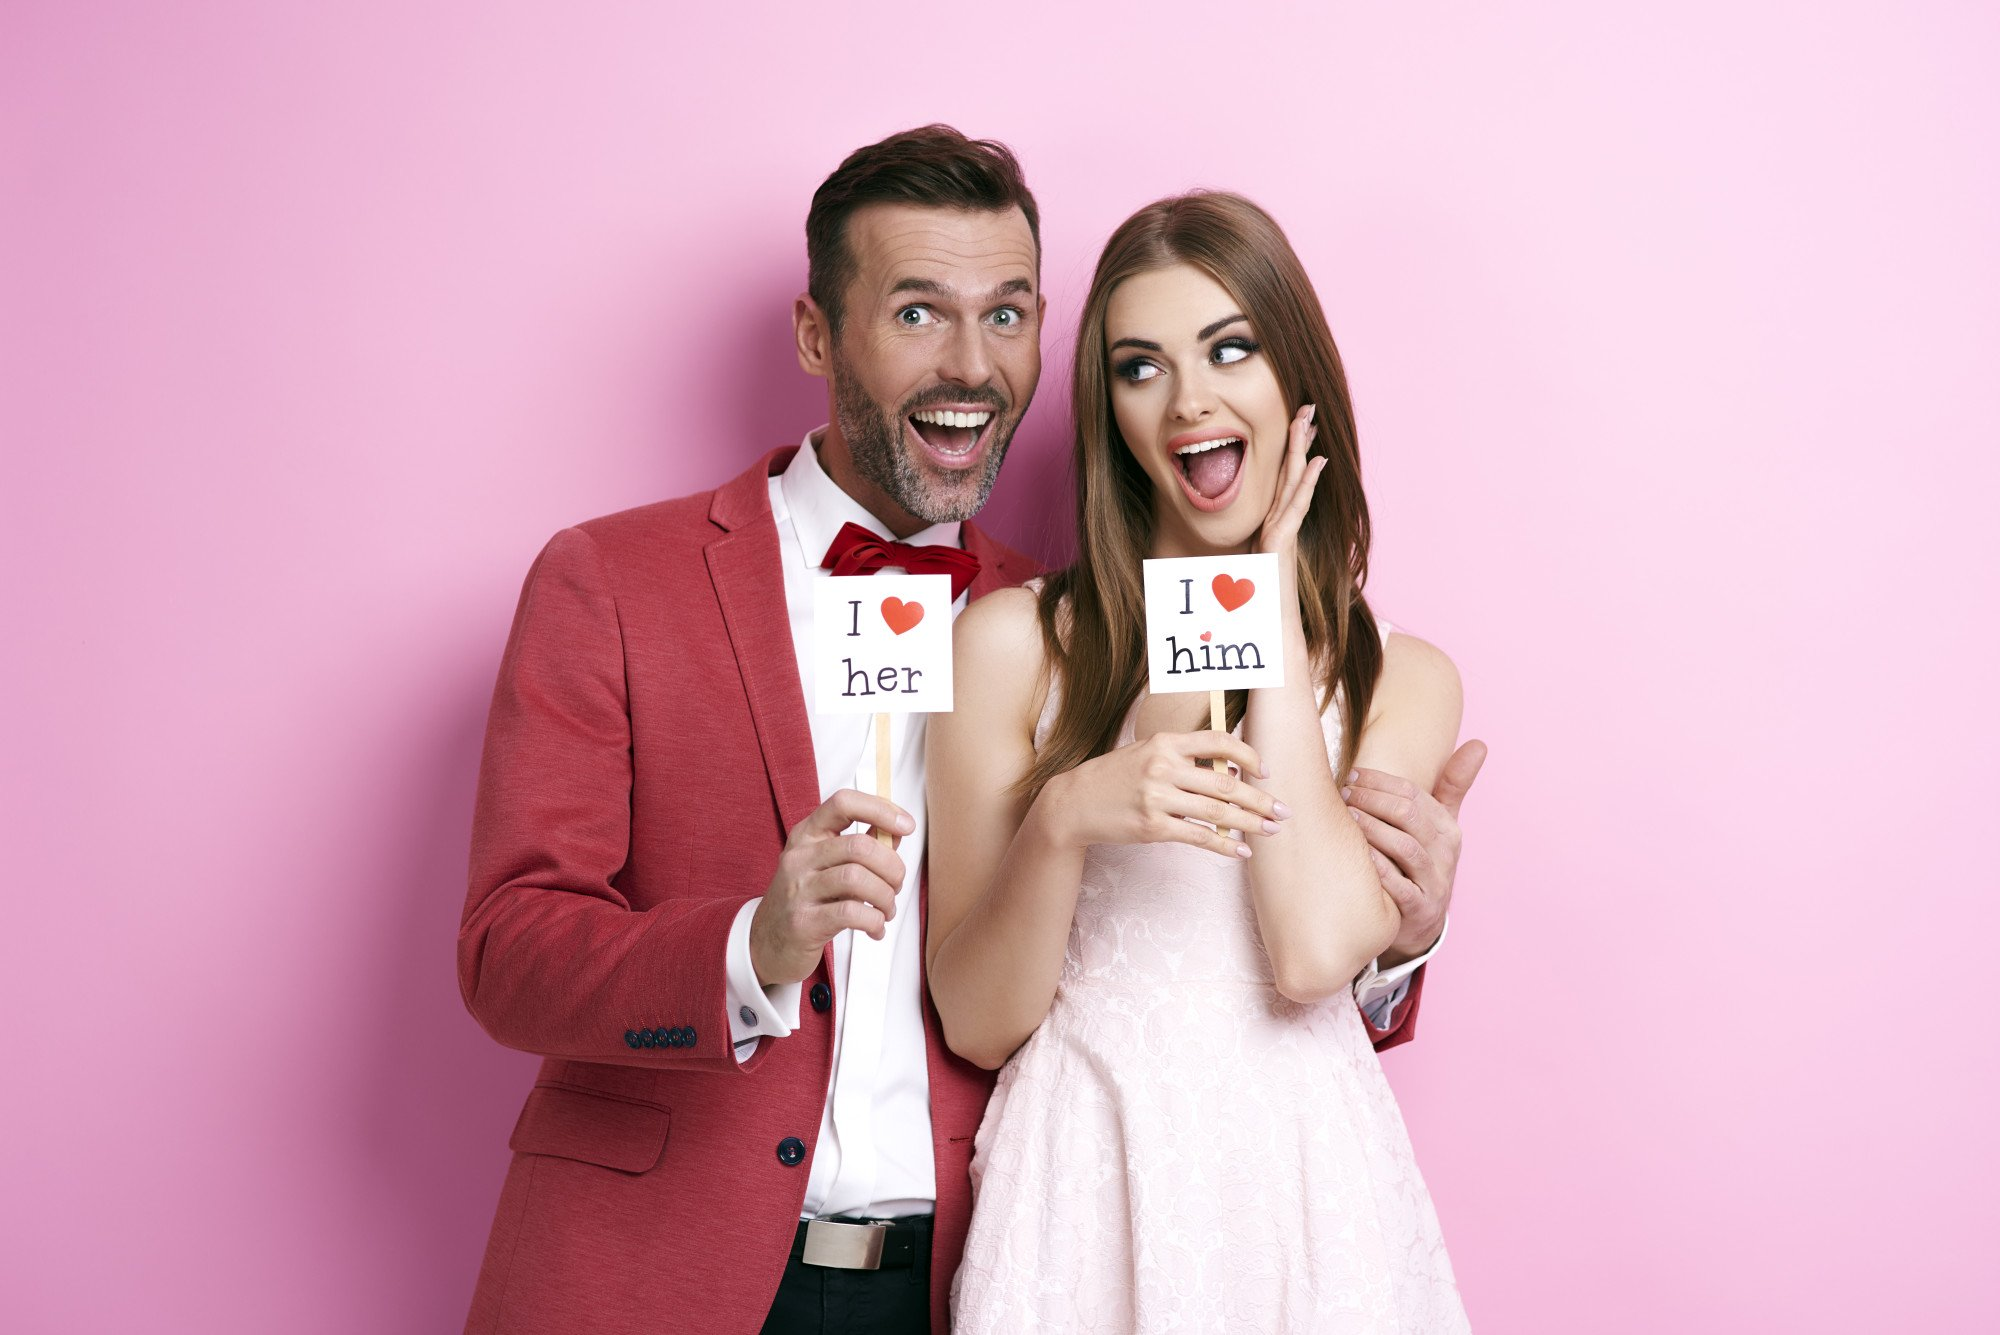 Planning a Wedding Soon? Here's How to Hire a Photo Booth in London!